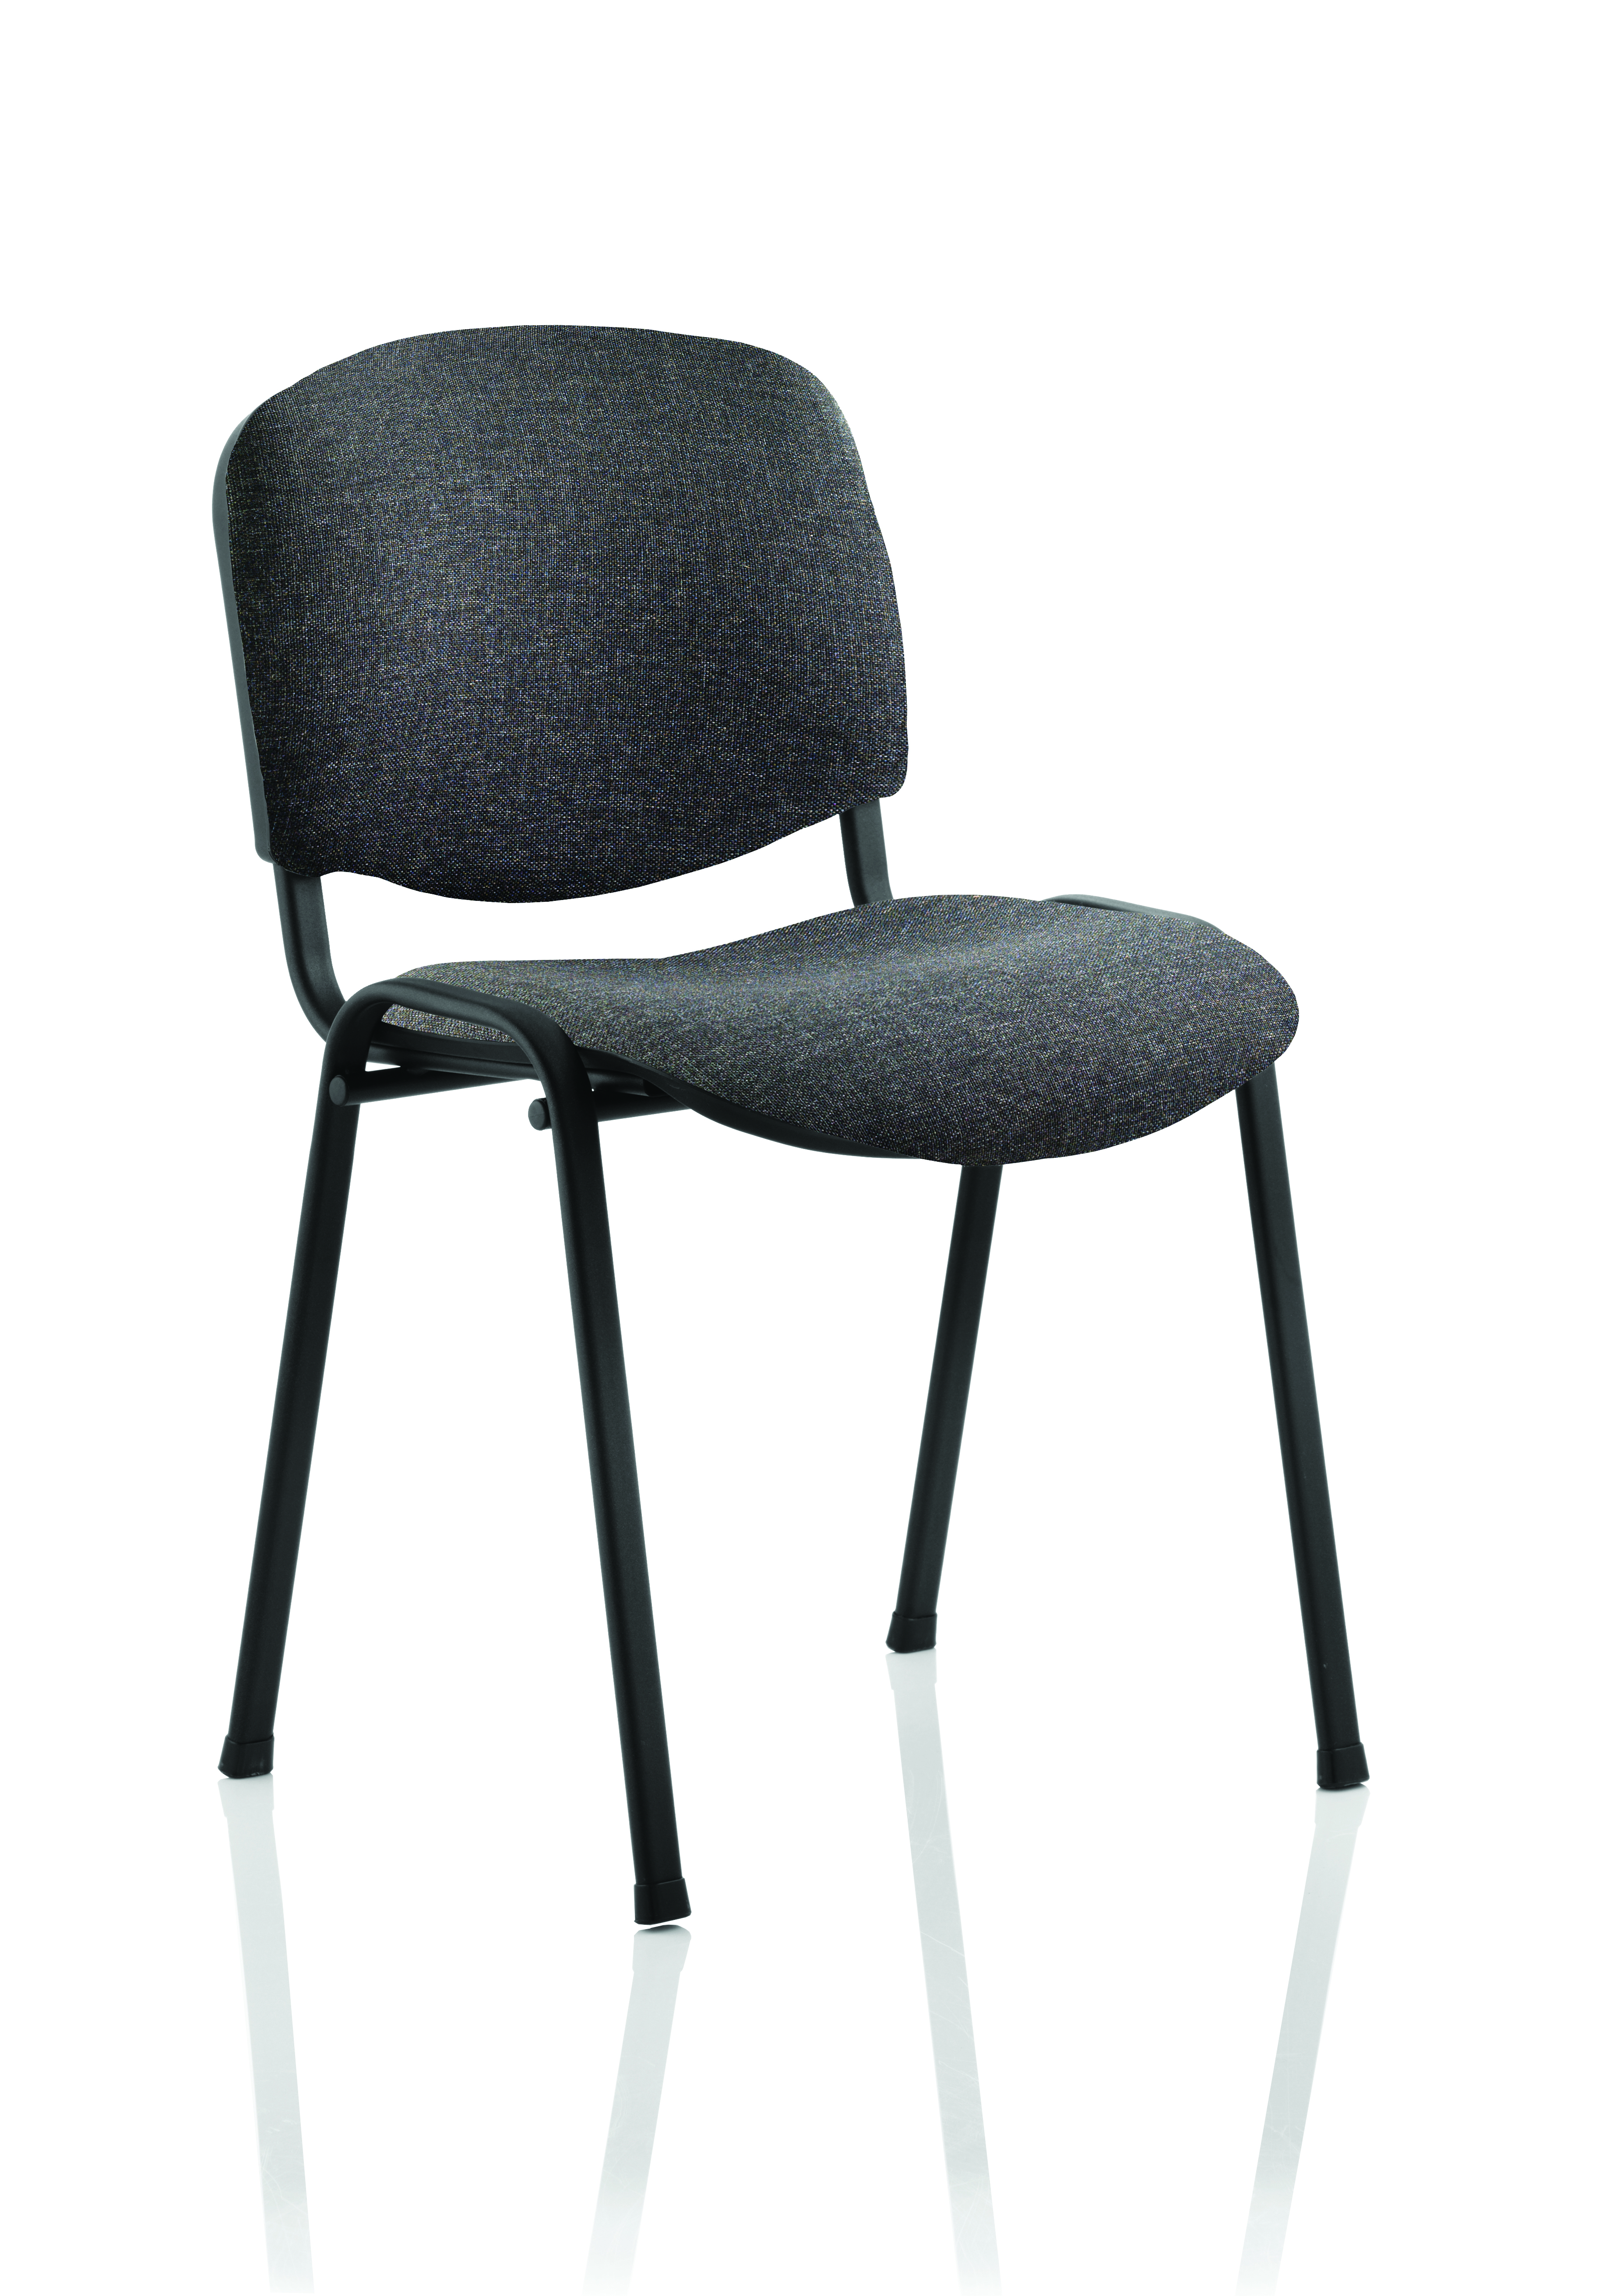 Stacking Chairs ISO Stacking Chair Charcoal Fabric Black Frame BR000059